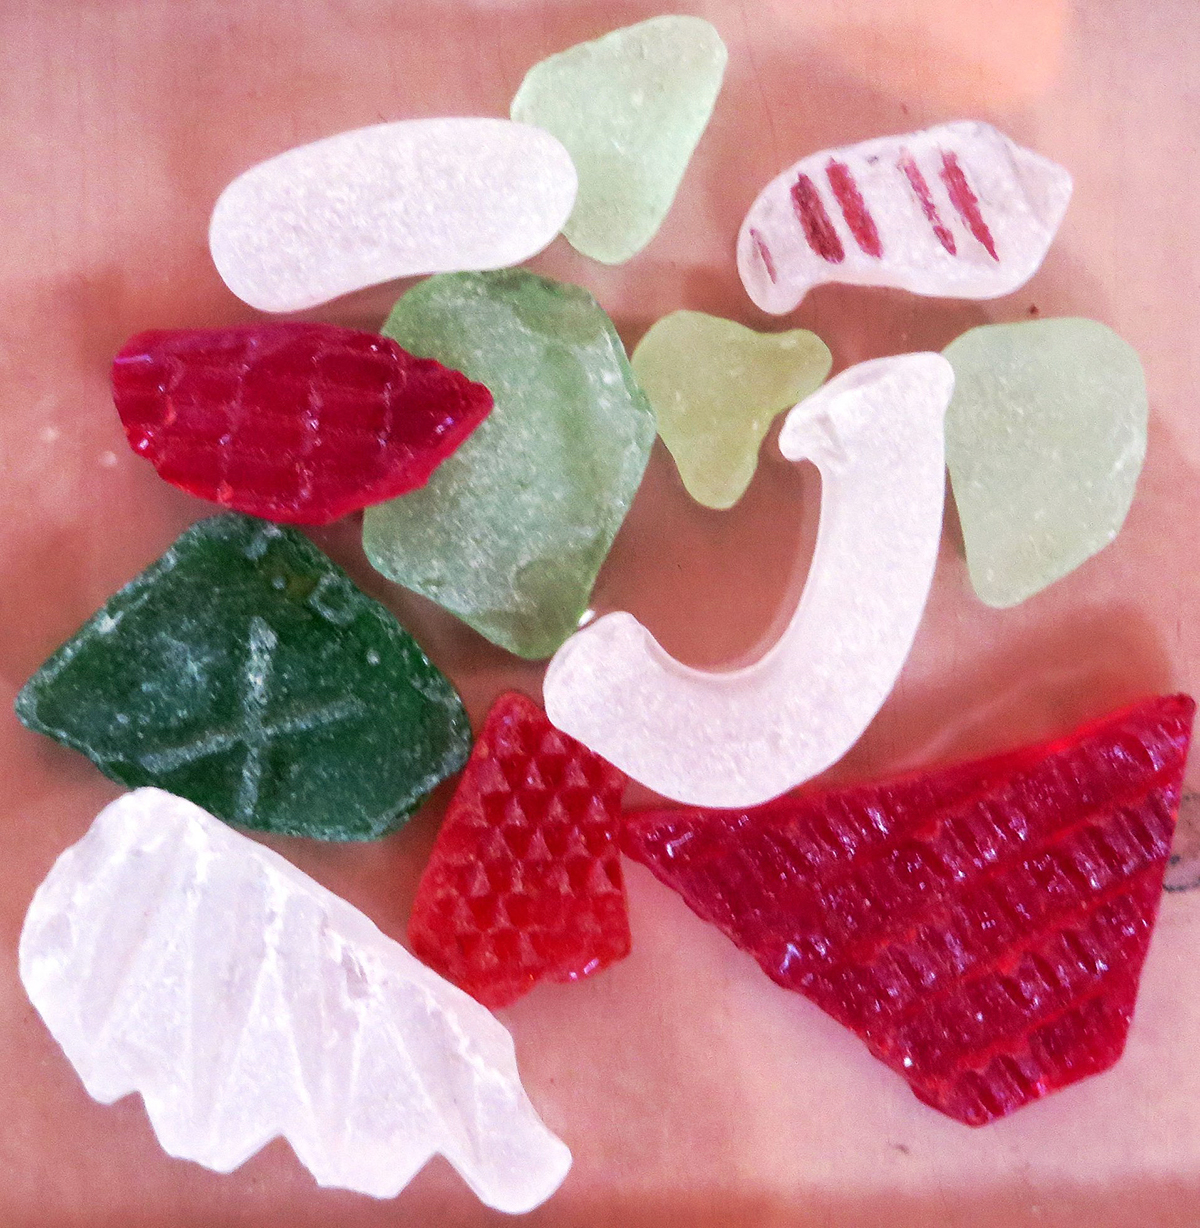 Seasoned Greetings sea glass by Justine Kibbe